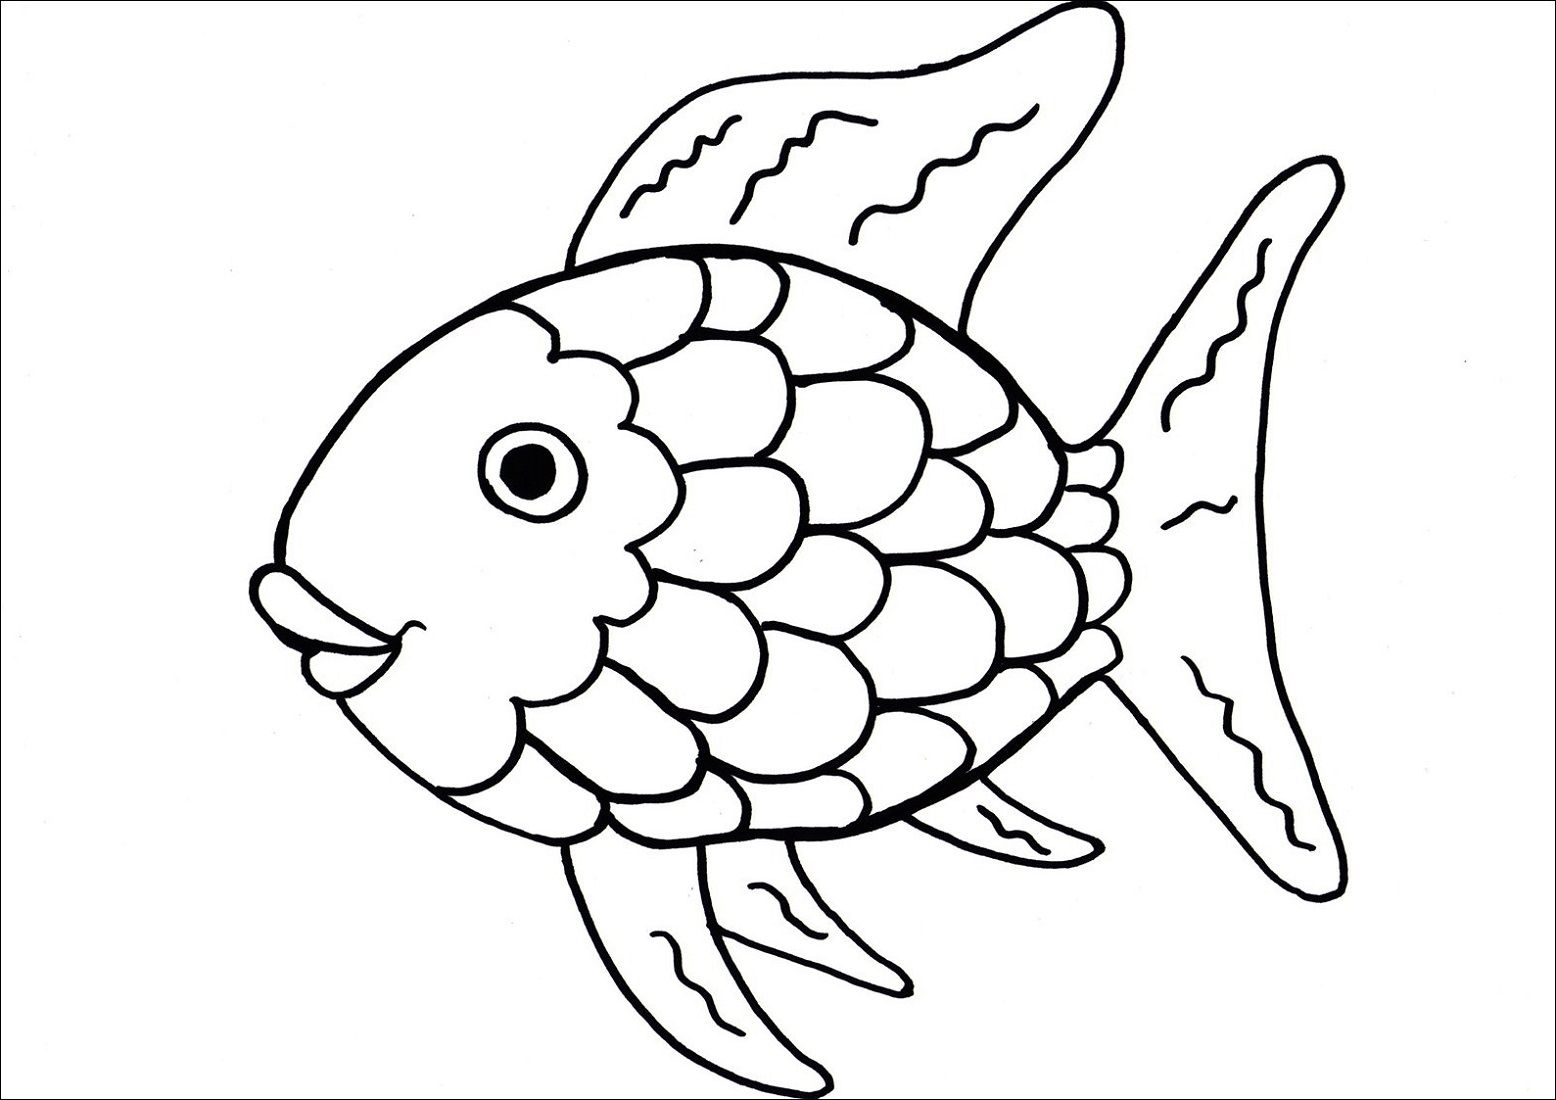 Printable Coloring Pages For Toddlers Fish Learning Printable Rainbow Fish Coloring Page Fish Coloring Page Rainbow Fish Template